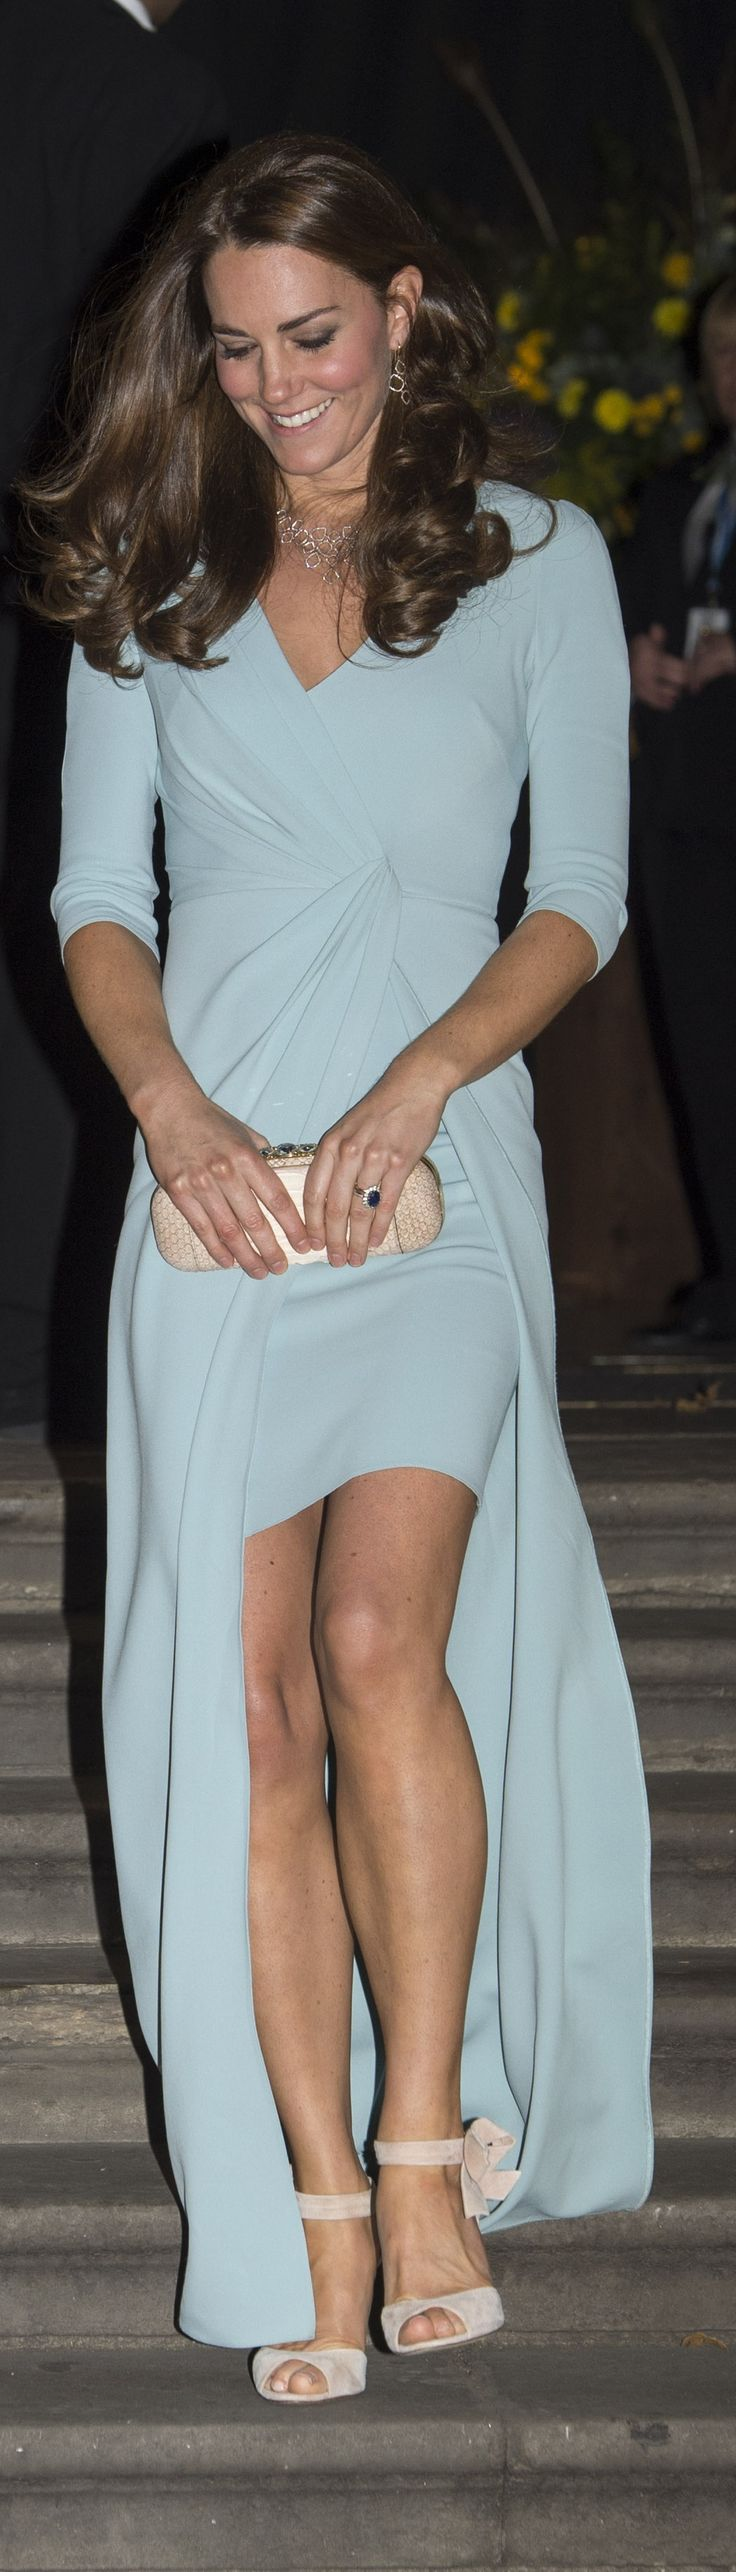 Catherine, Duchess of Cambridge leaves the Natural History Museum after she attended the Wildlife Photographer of The Year 2014 Awards Ceremony on October 21, 2014 in London, England.